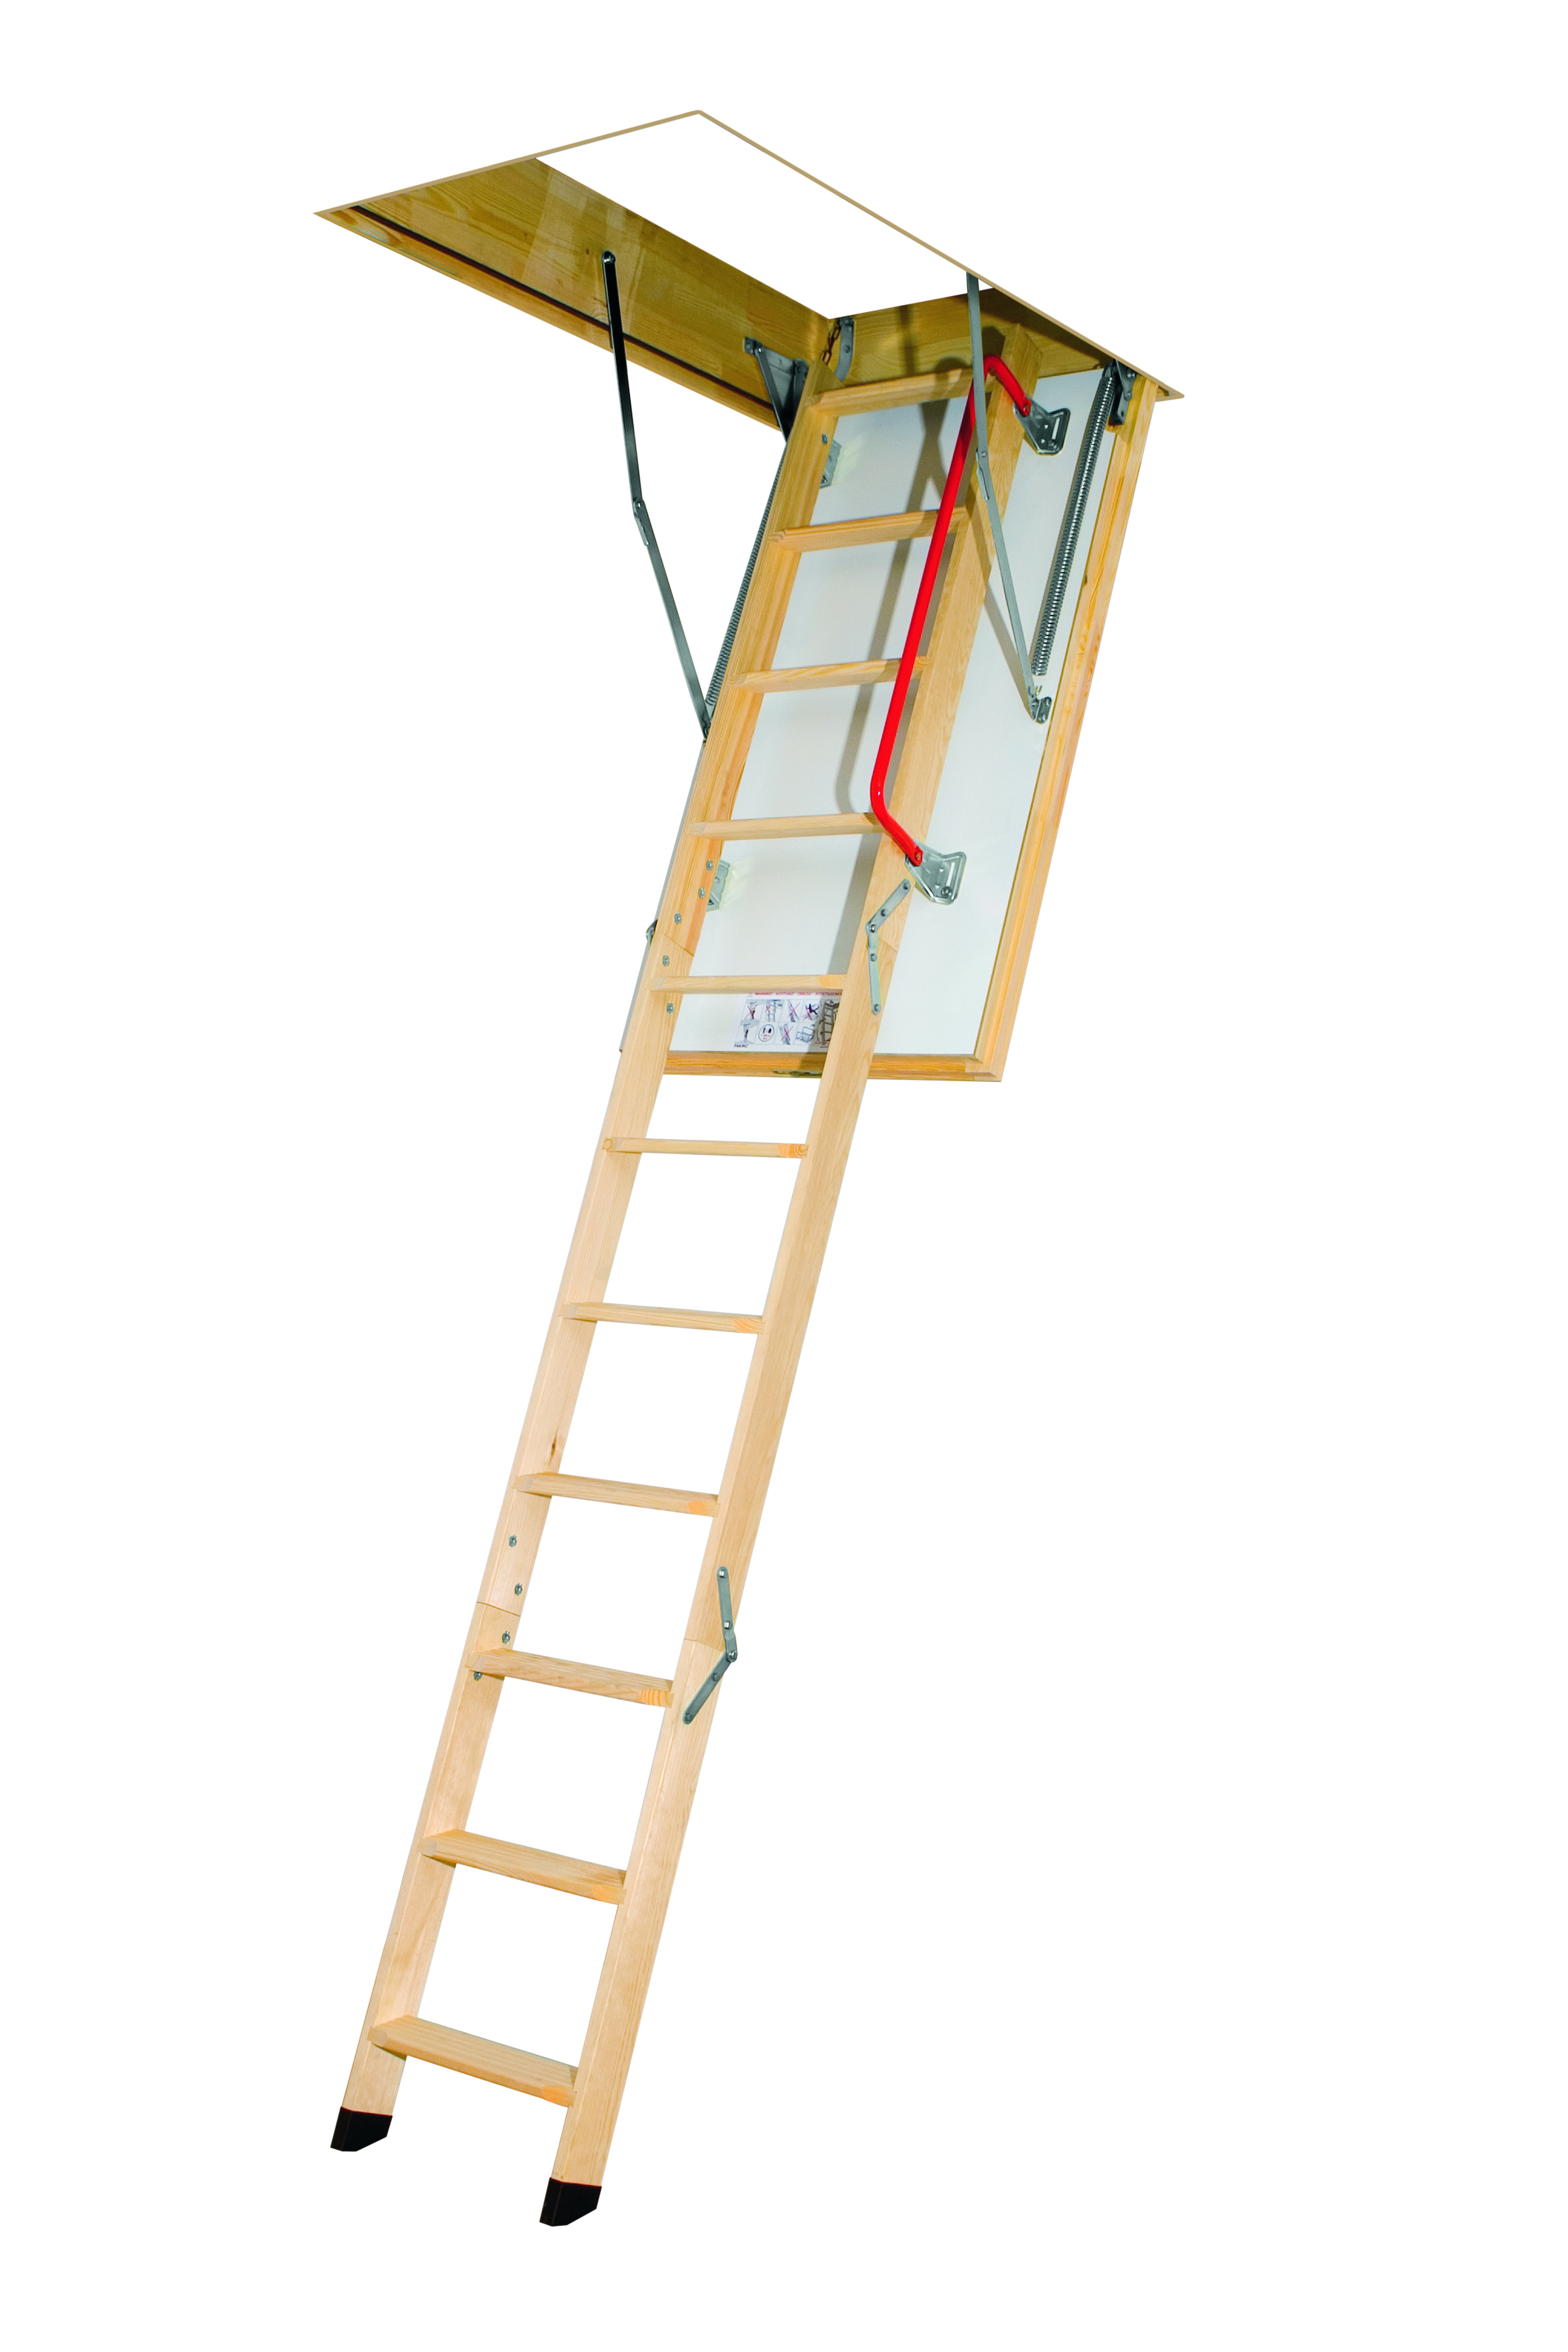 Fakro LTK Thermo 3 Section Folding Attic Ladder   2.8m